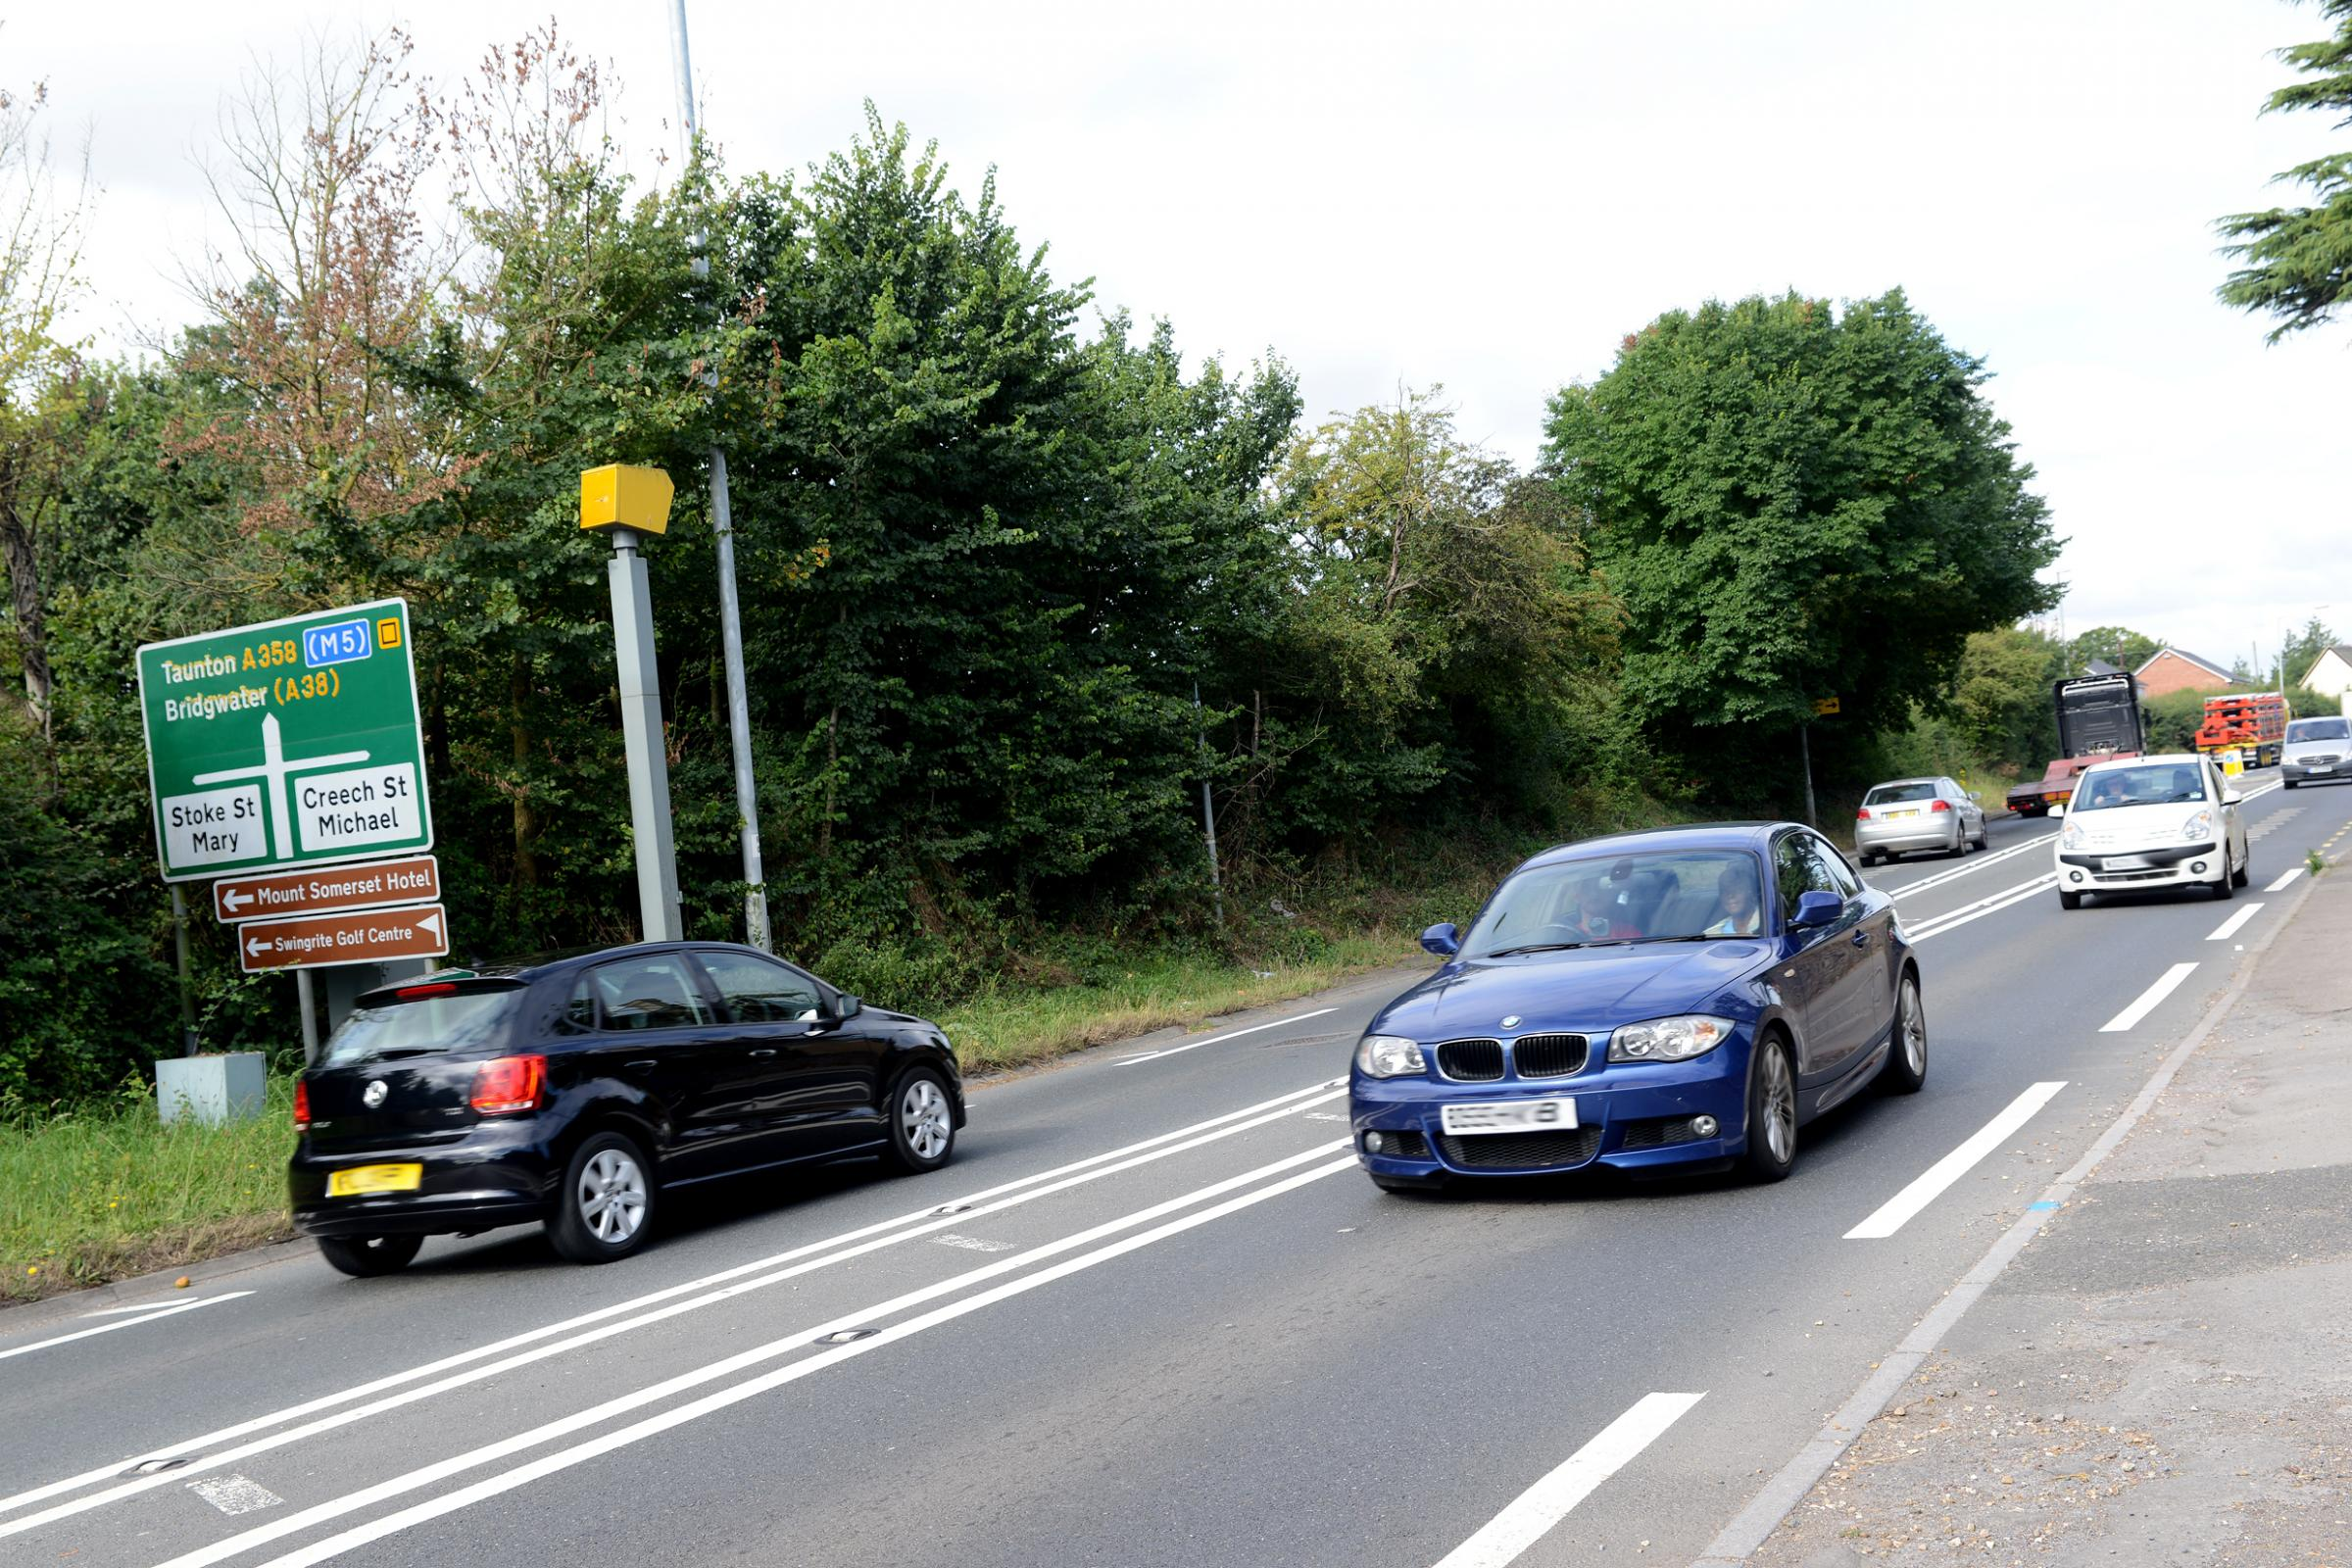 DUALLING NEED: On the A358